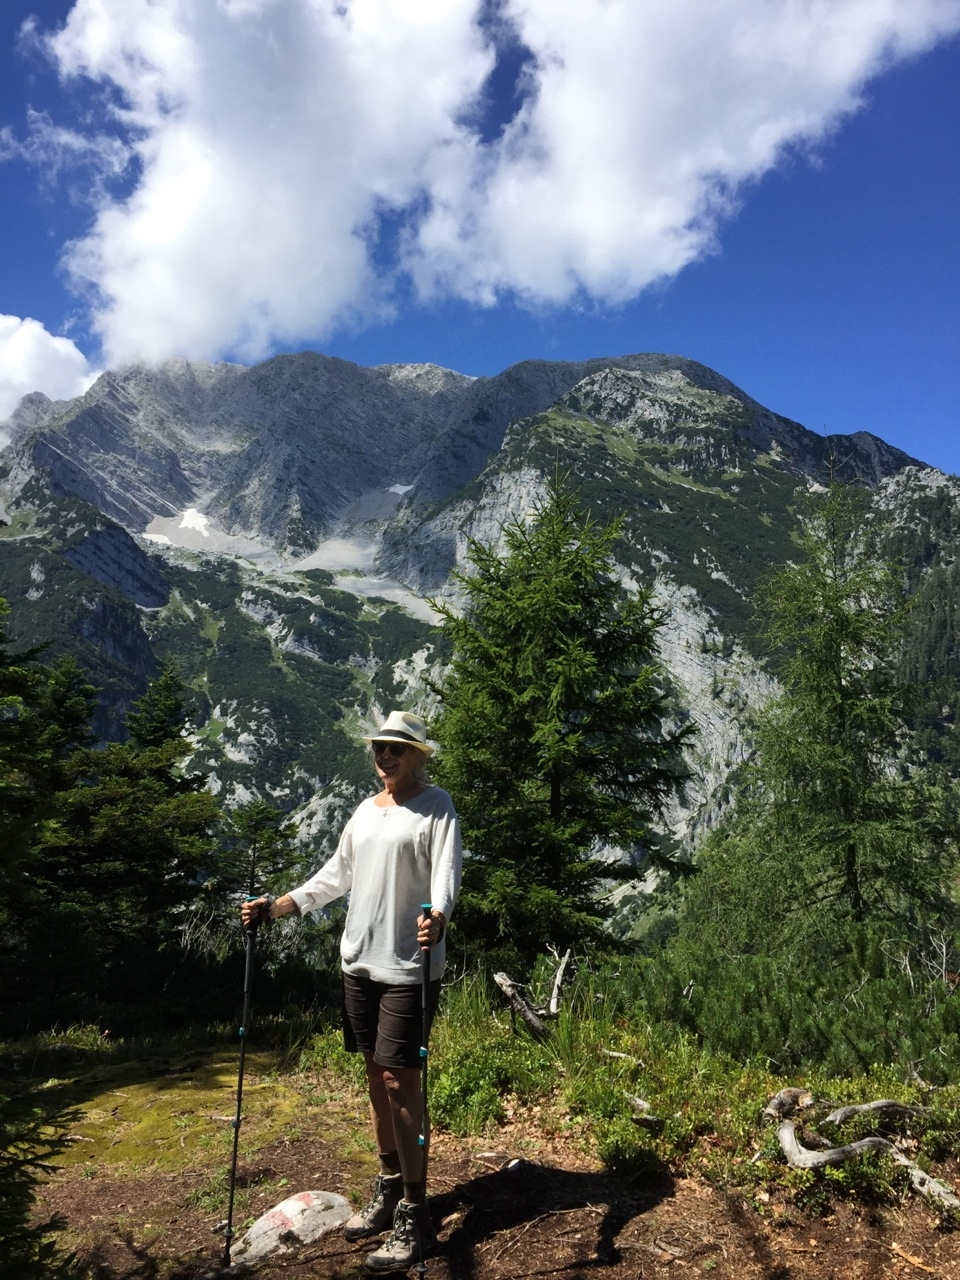 Hiking in the Austrian Alps, near the town of Irdning